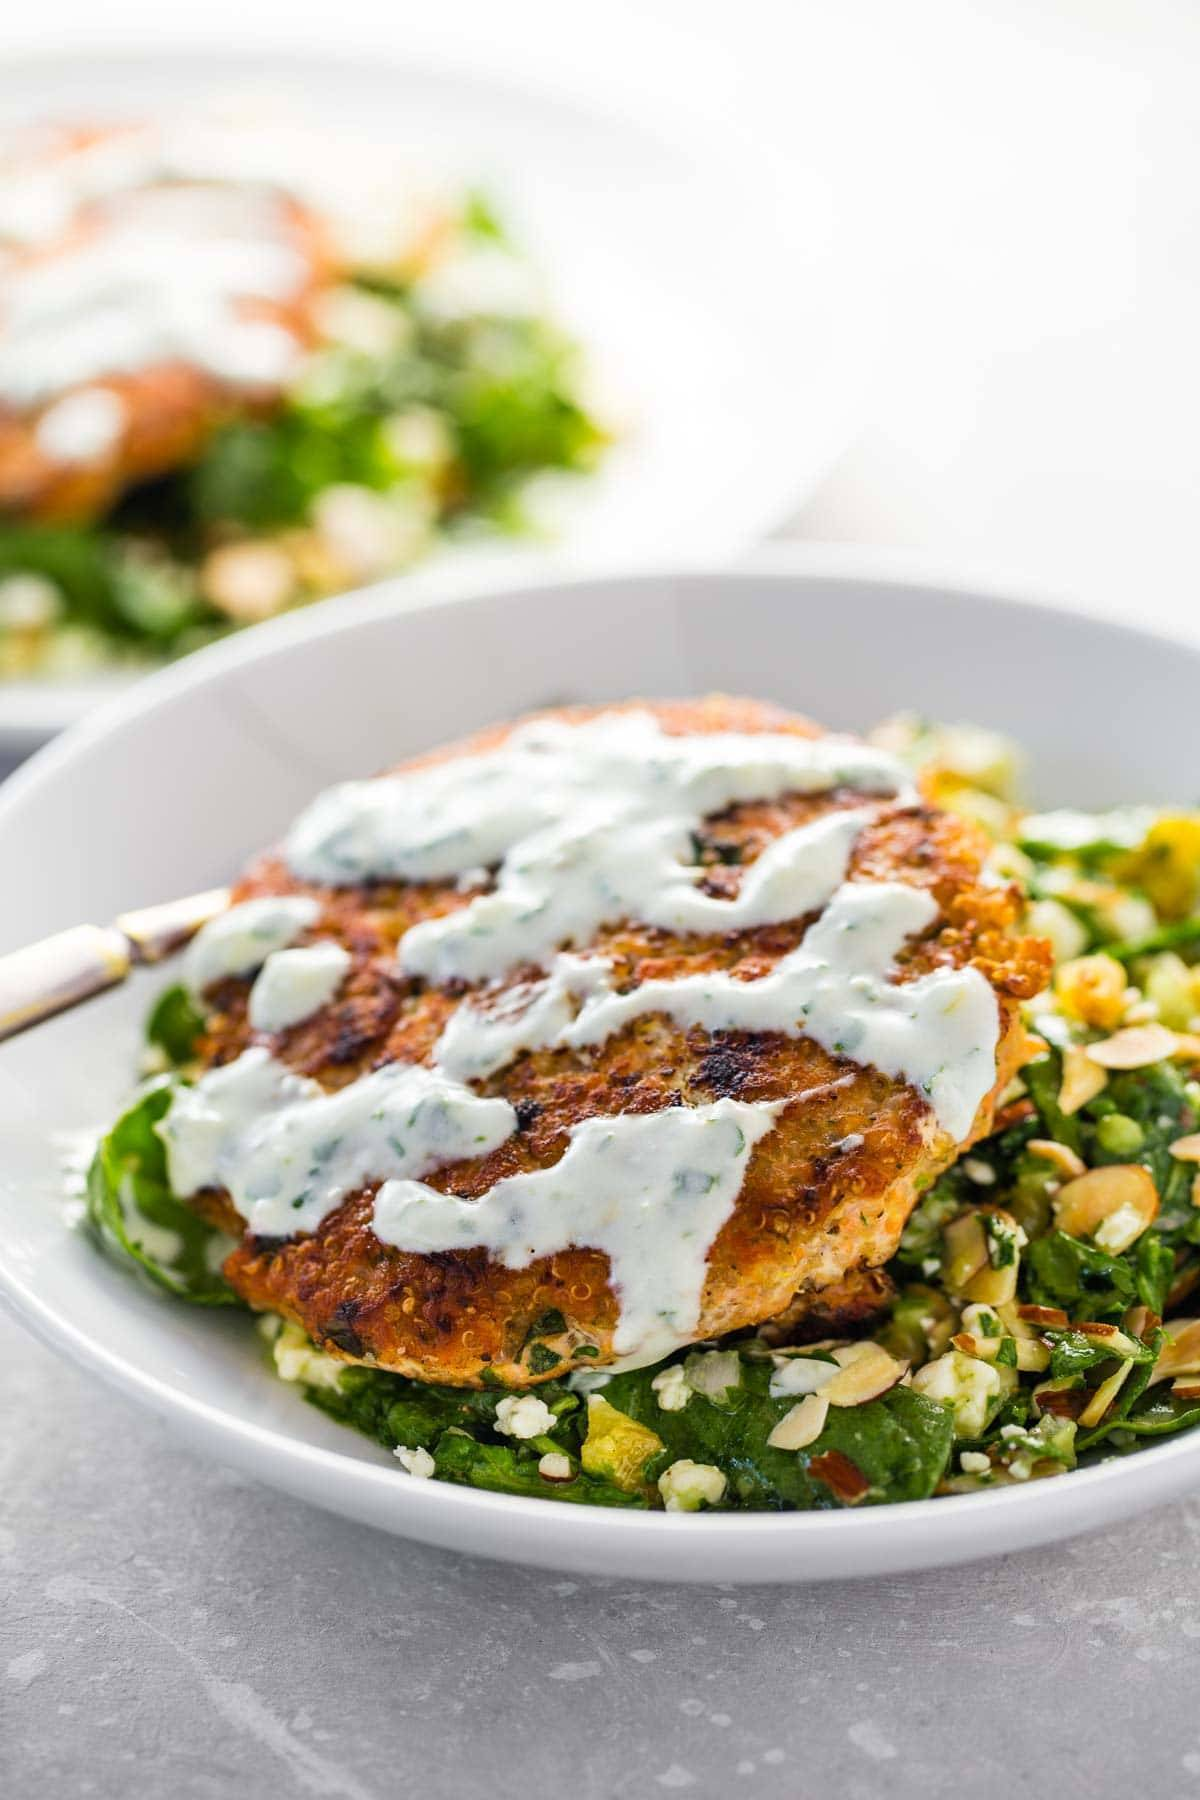 Lemon herb salmon burgers recipe pinch of yum lemon herb salmon burgers a healthy fresh recipe that is a must for salmon ccuart Gallery